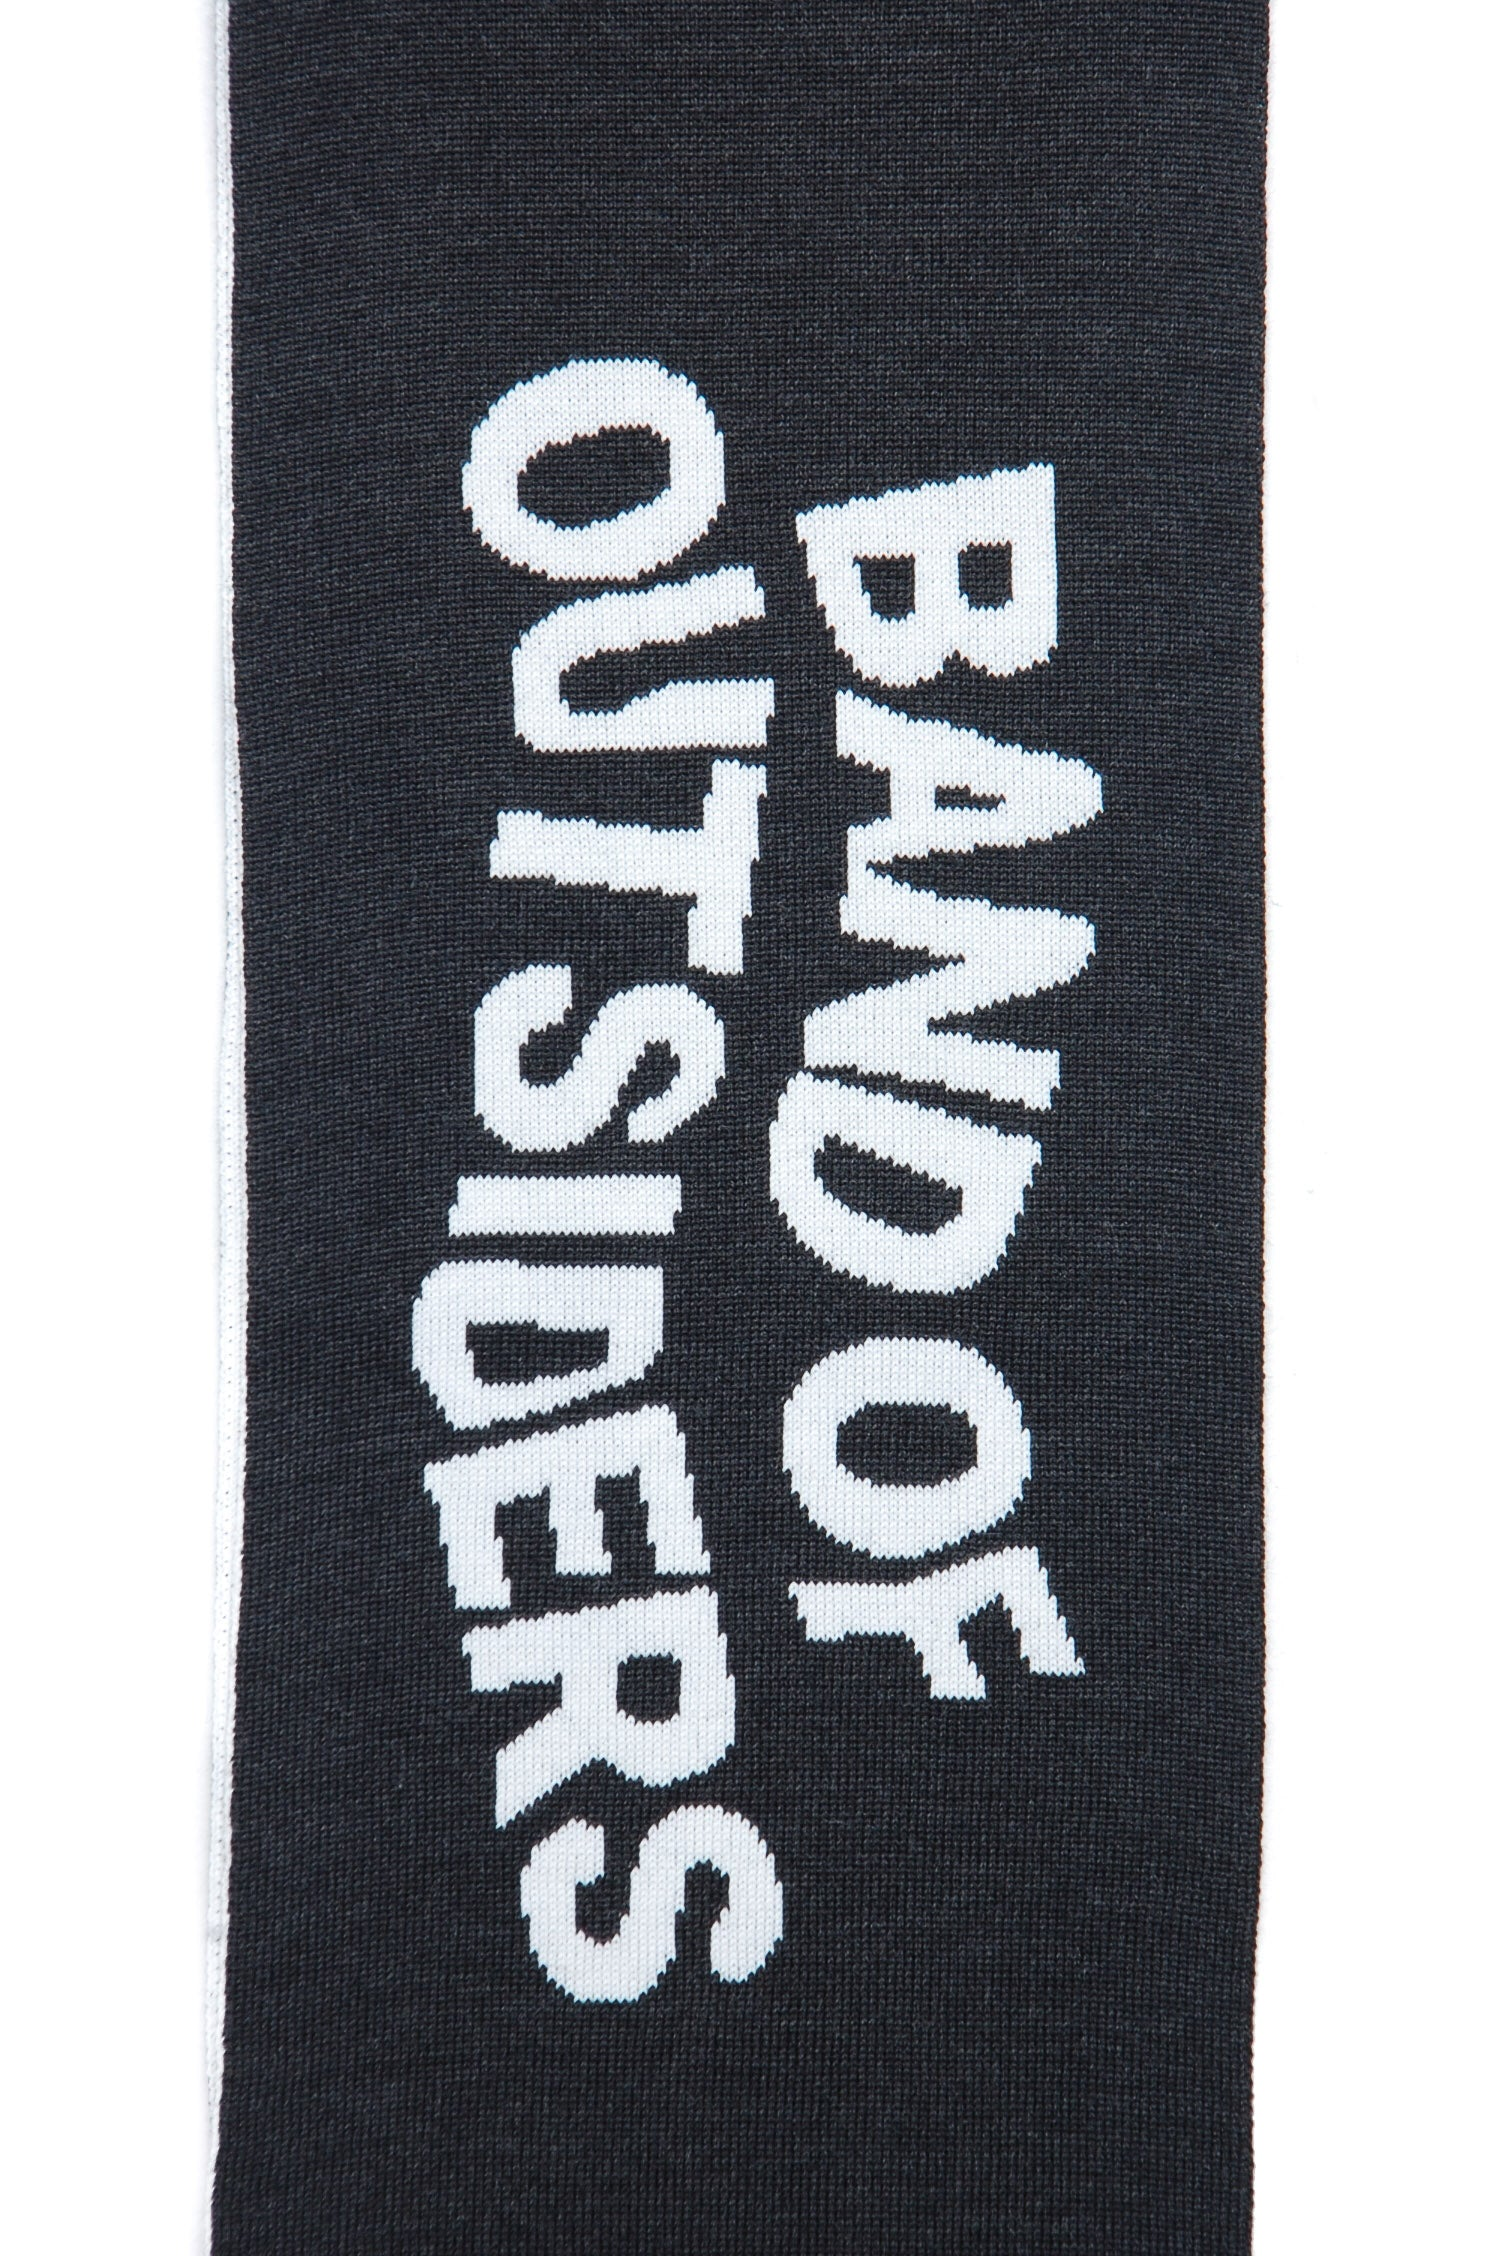 Band of Outsiders Band Scarf W/Stripe Detail KW14 CK110 8001 charcoal